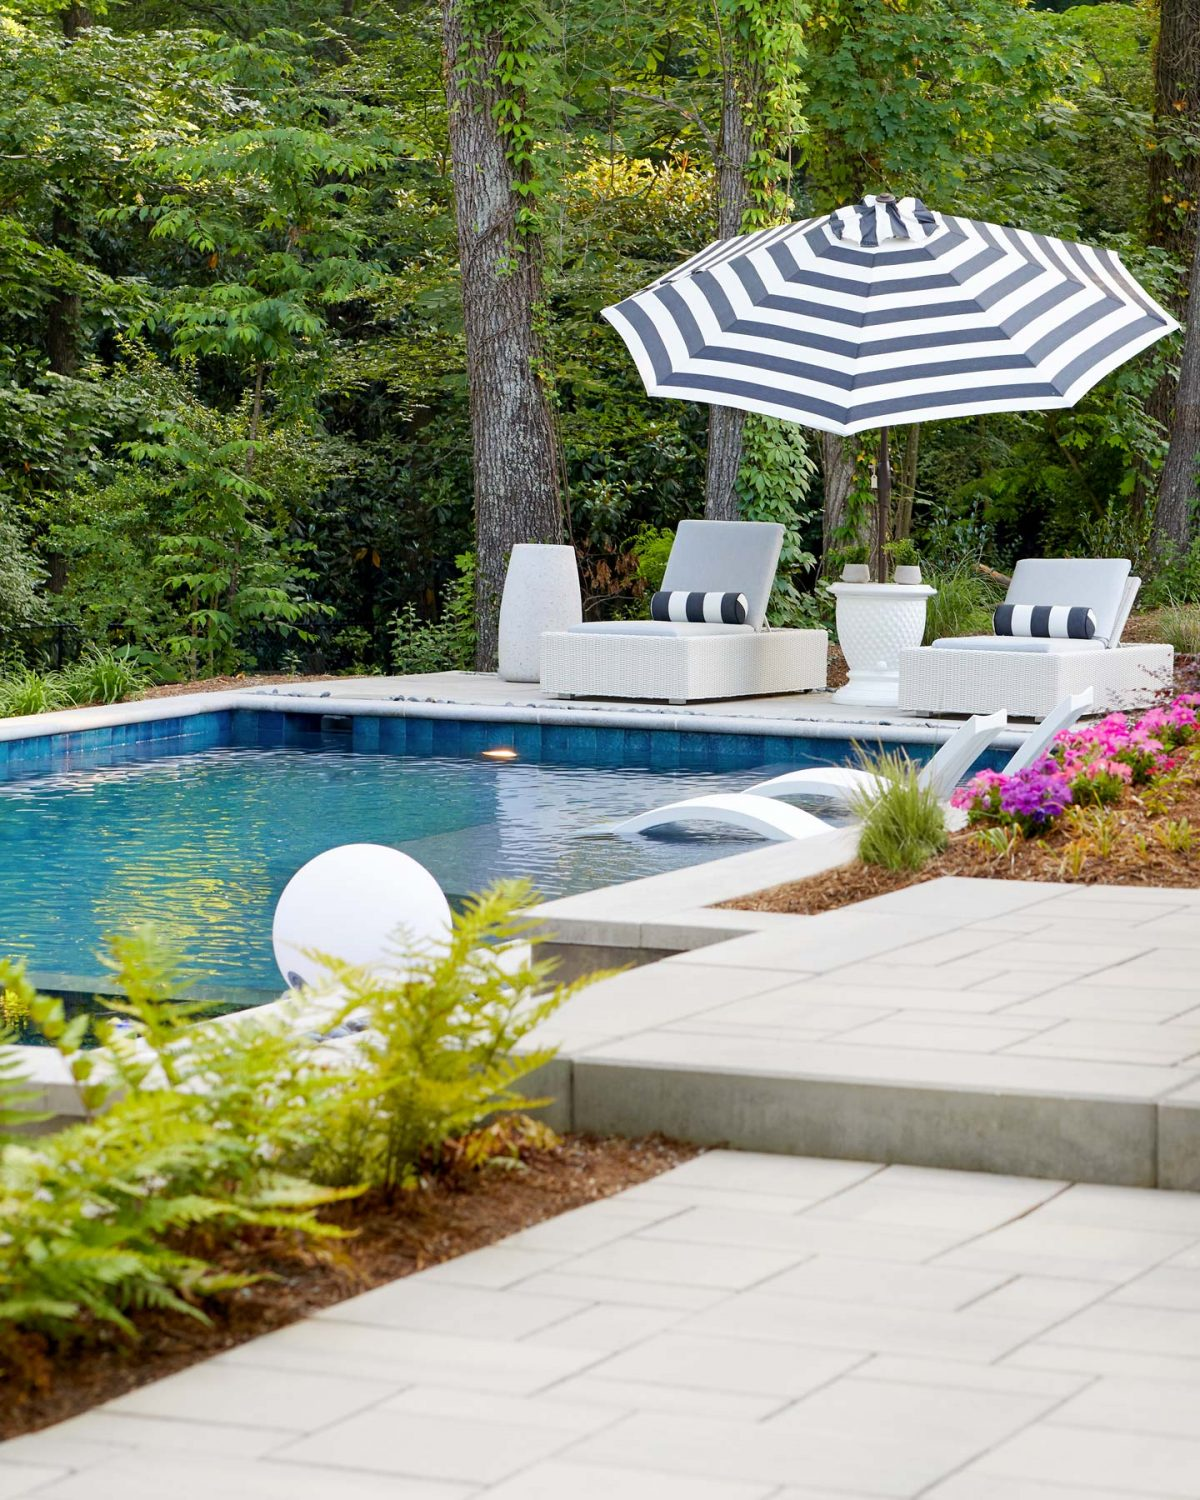 Editorial photography of a modern pool and patio